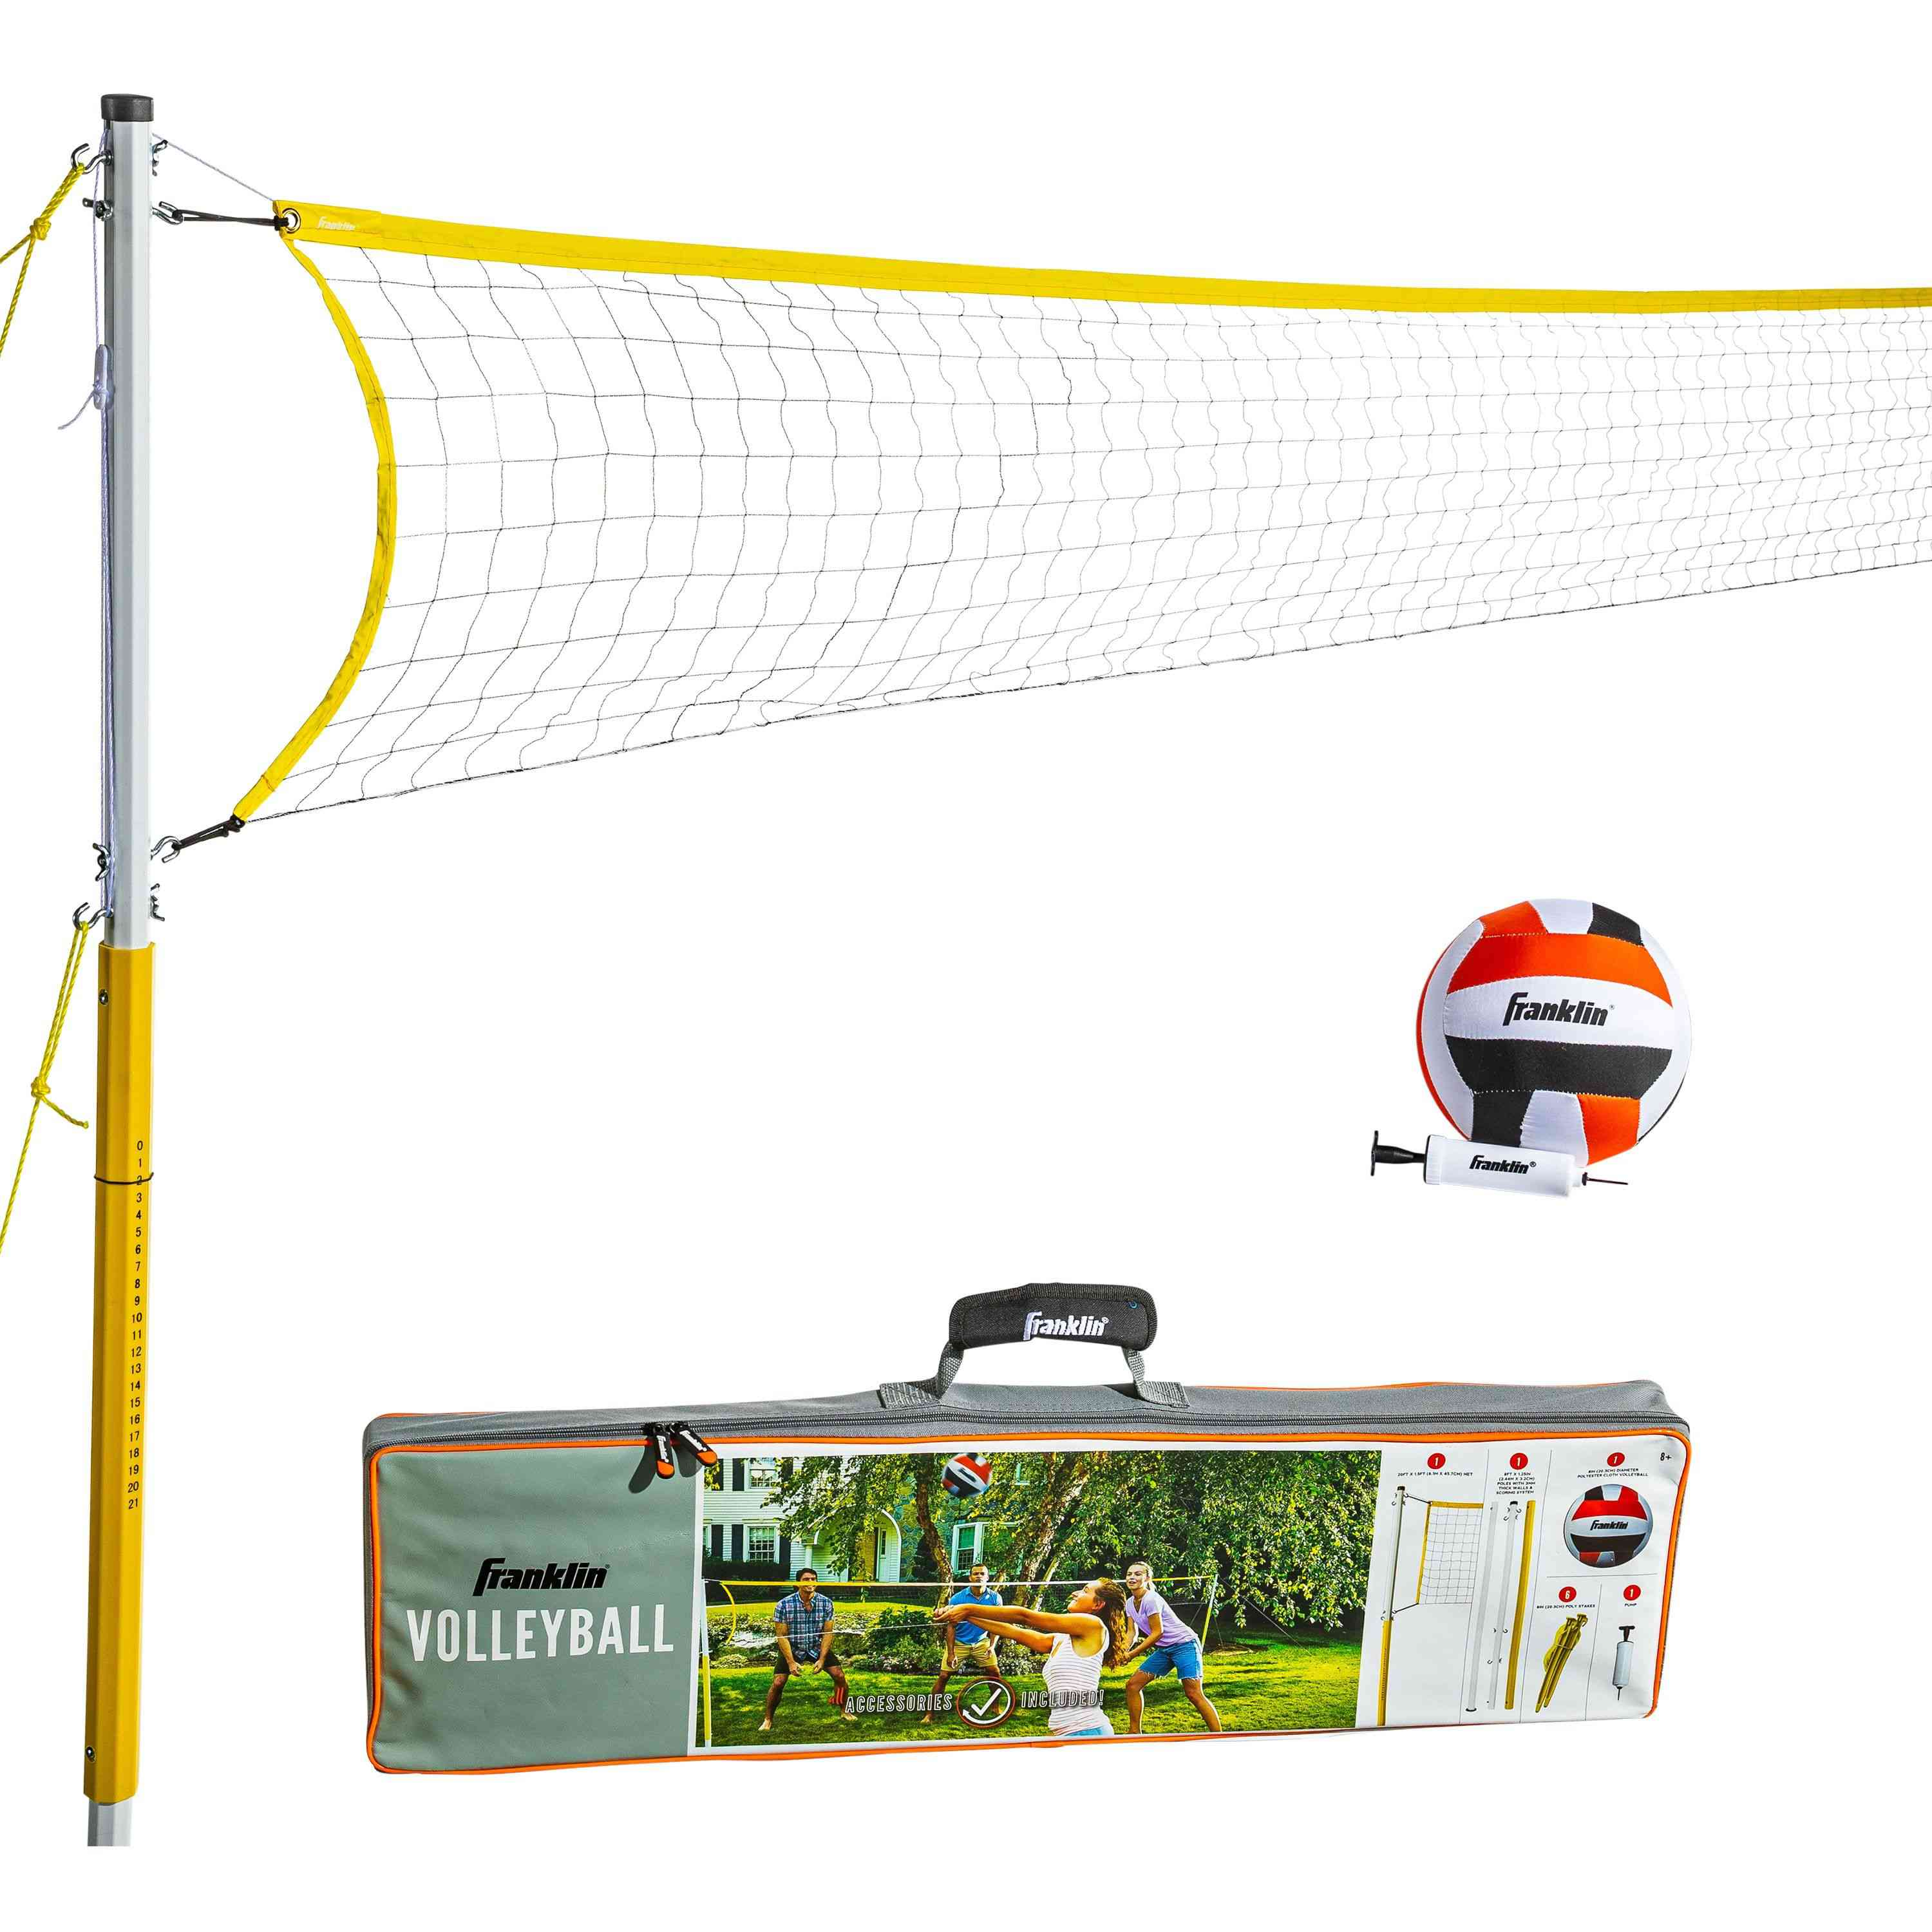 Franklin Family Volleyball Set